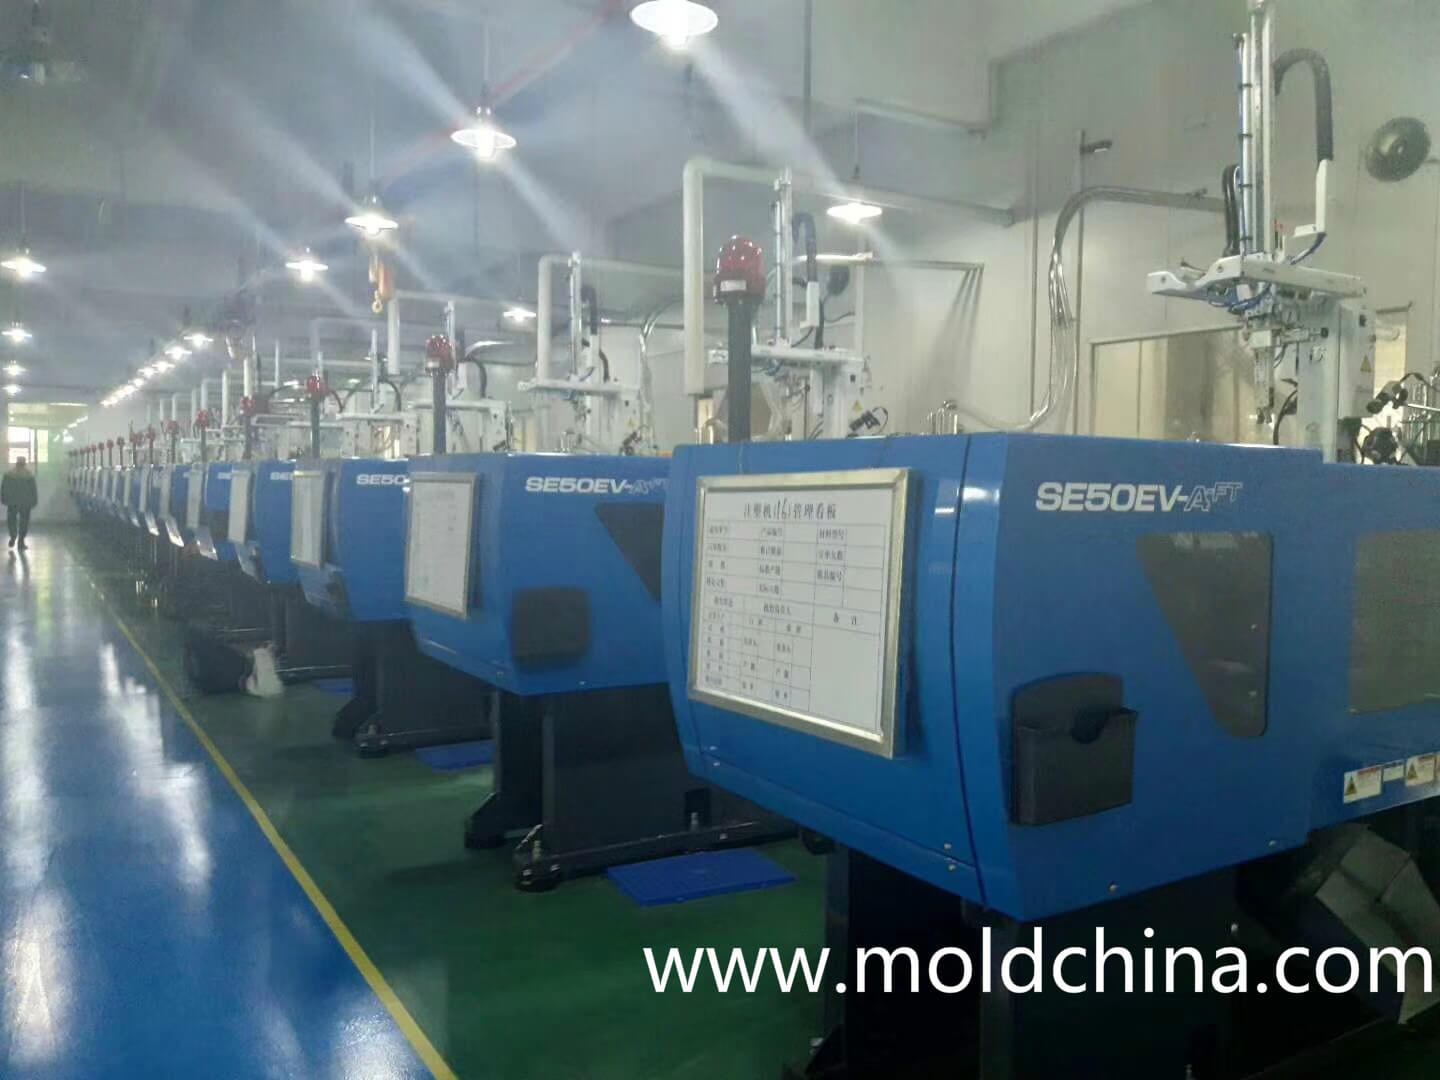 injection molding factory in China